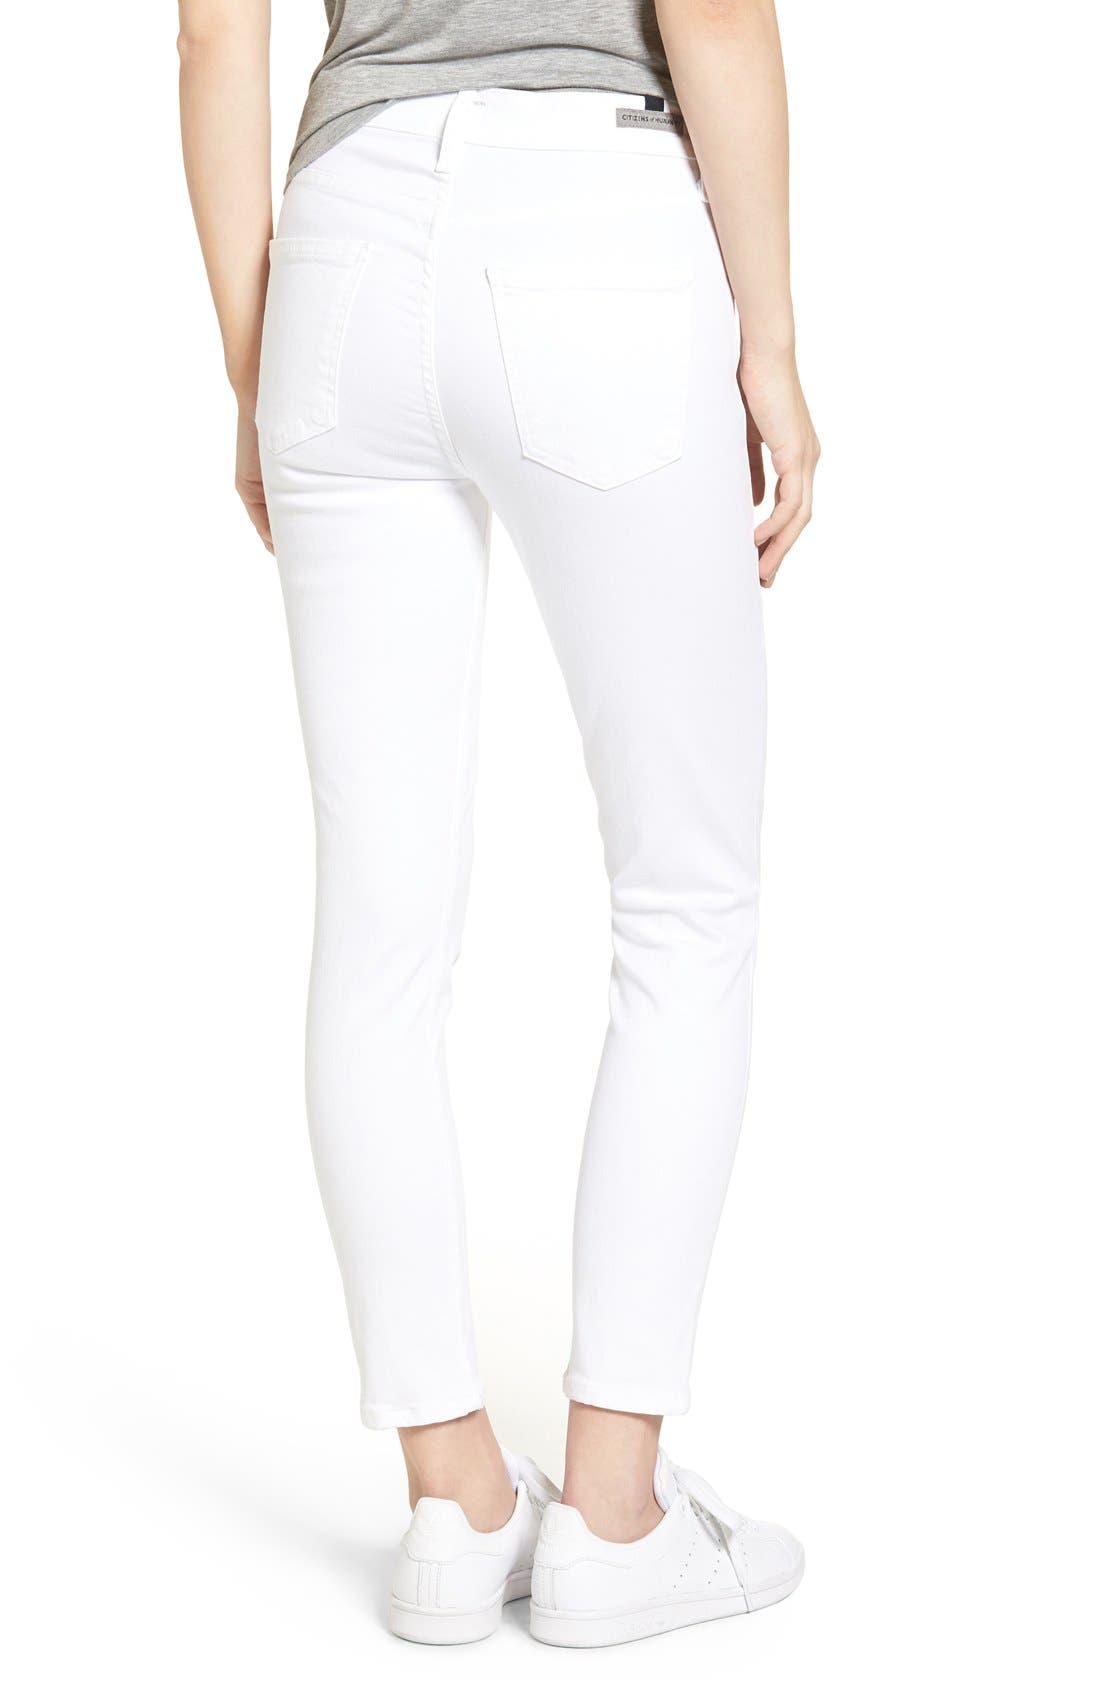 Alternate Image 2  - Citizens of Humanity Rocket High Waist Crop Skinny Jeans (Sculpt White)